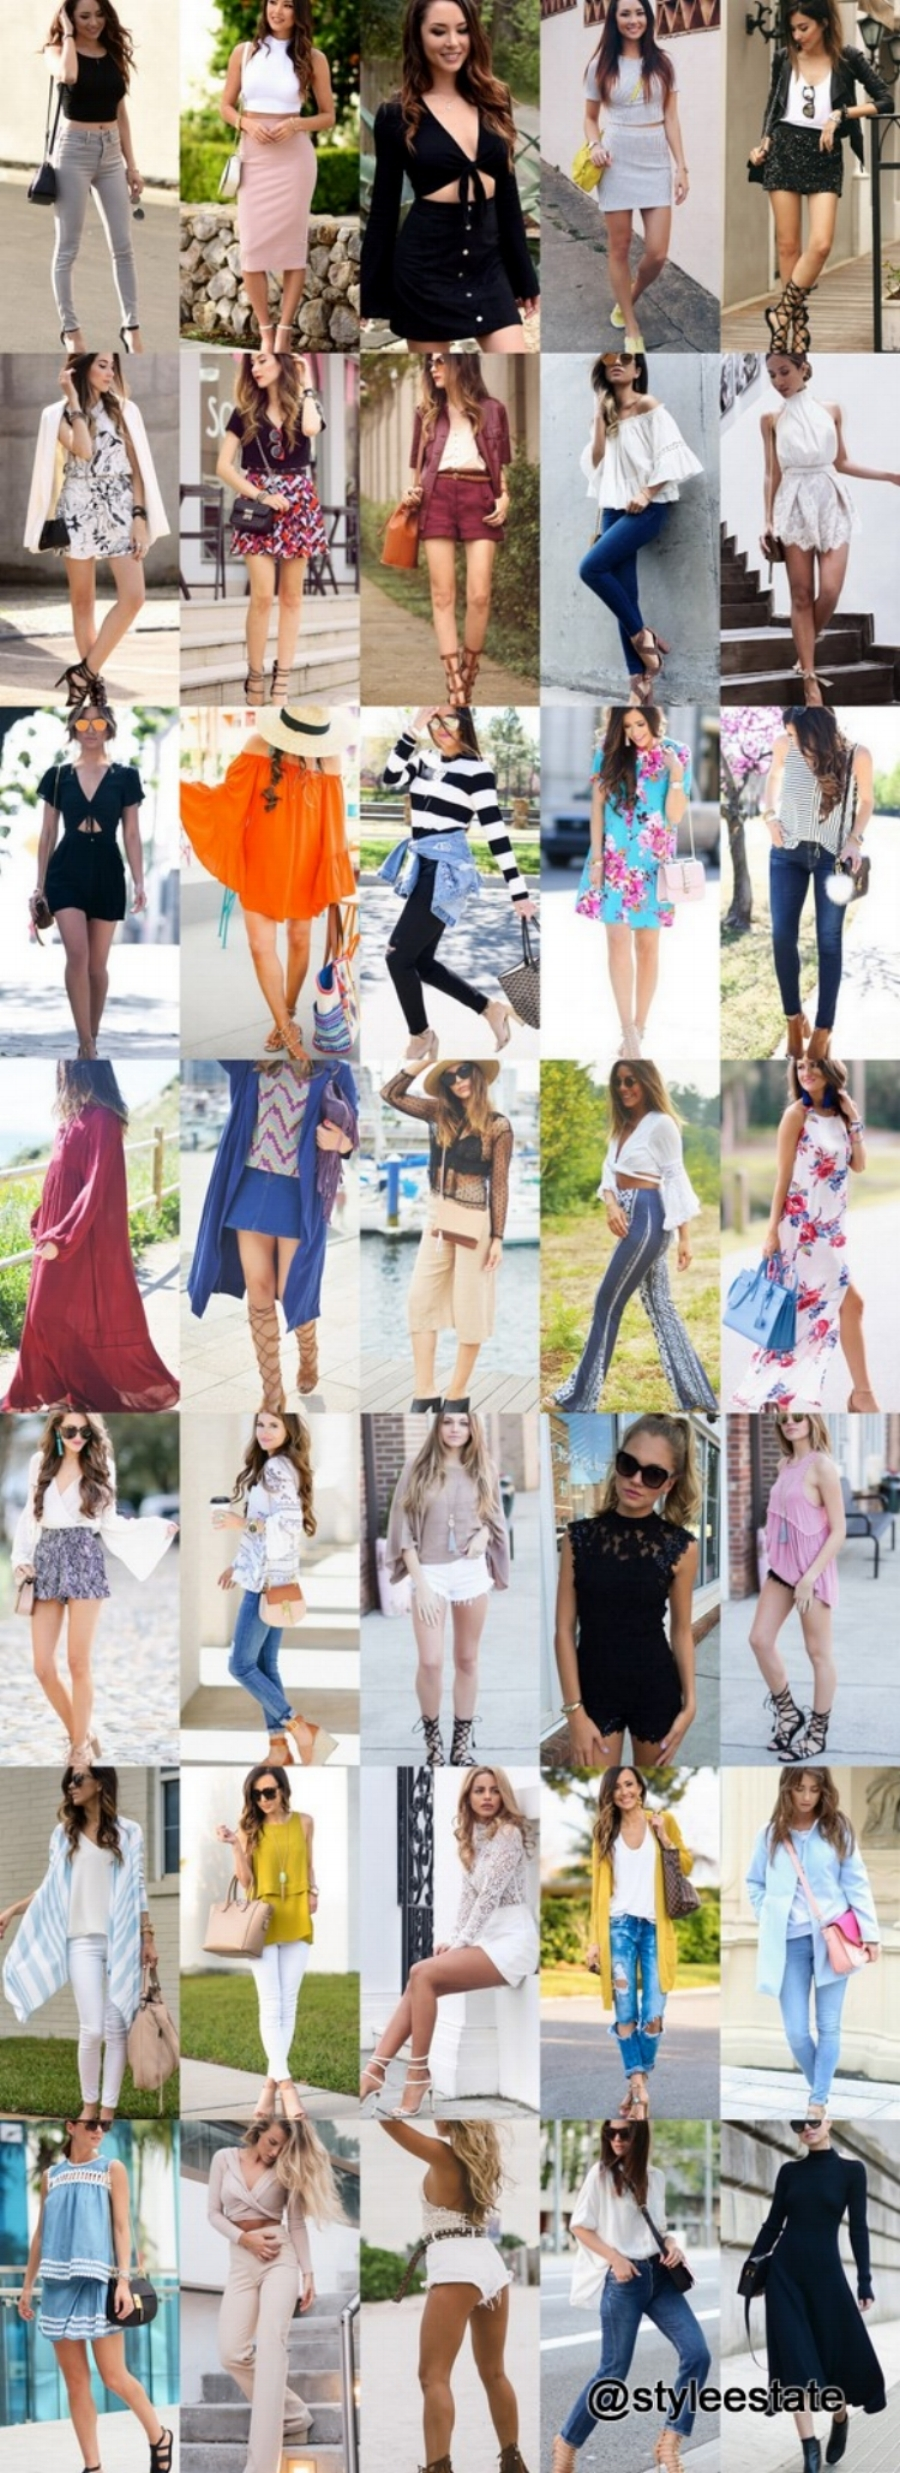 Fashion Trends Daily - 36 Trendy Spring/Summer Outfits 2016